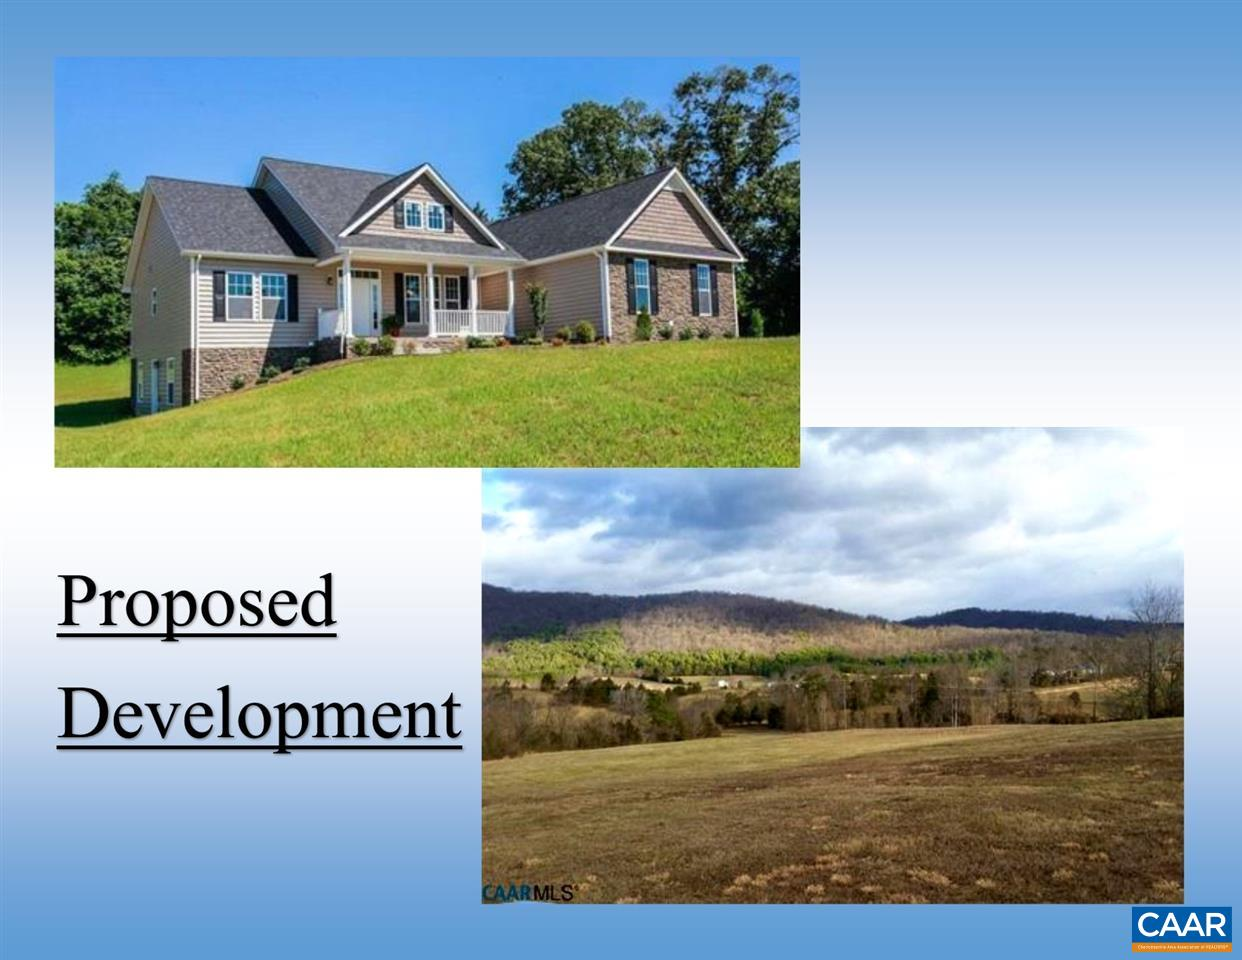 Single Family Home for Sale at LOT 14 LEXINGTON WAY Stanardsville, Virginia 22973 United States